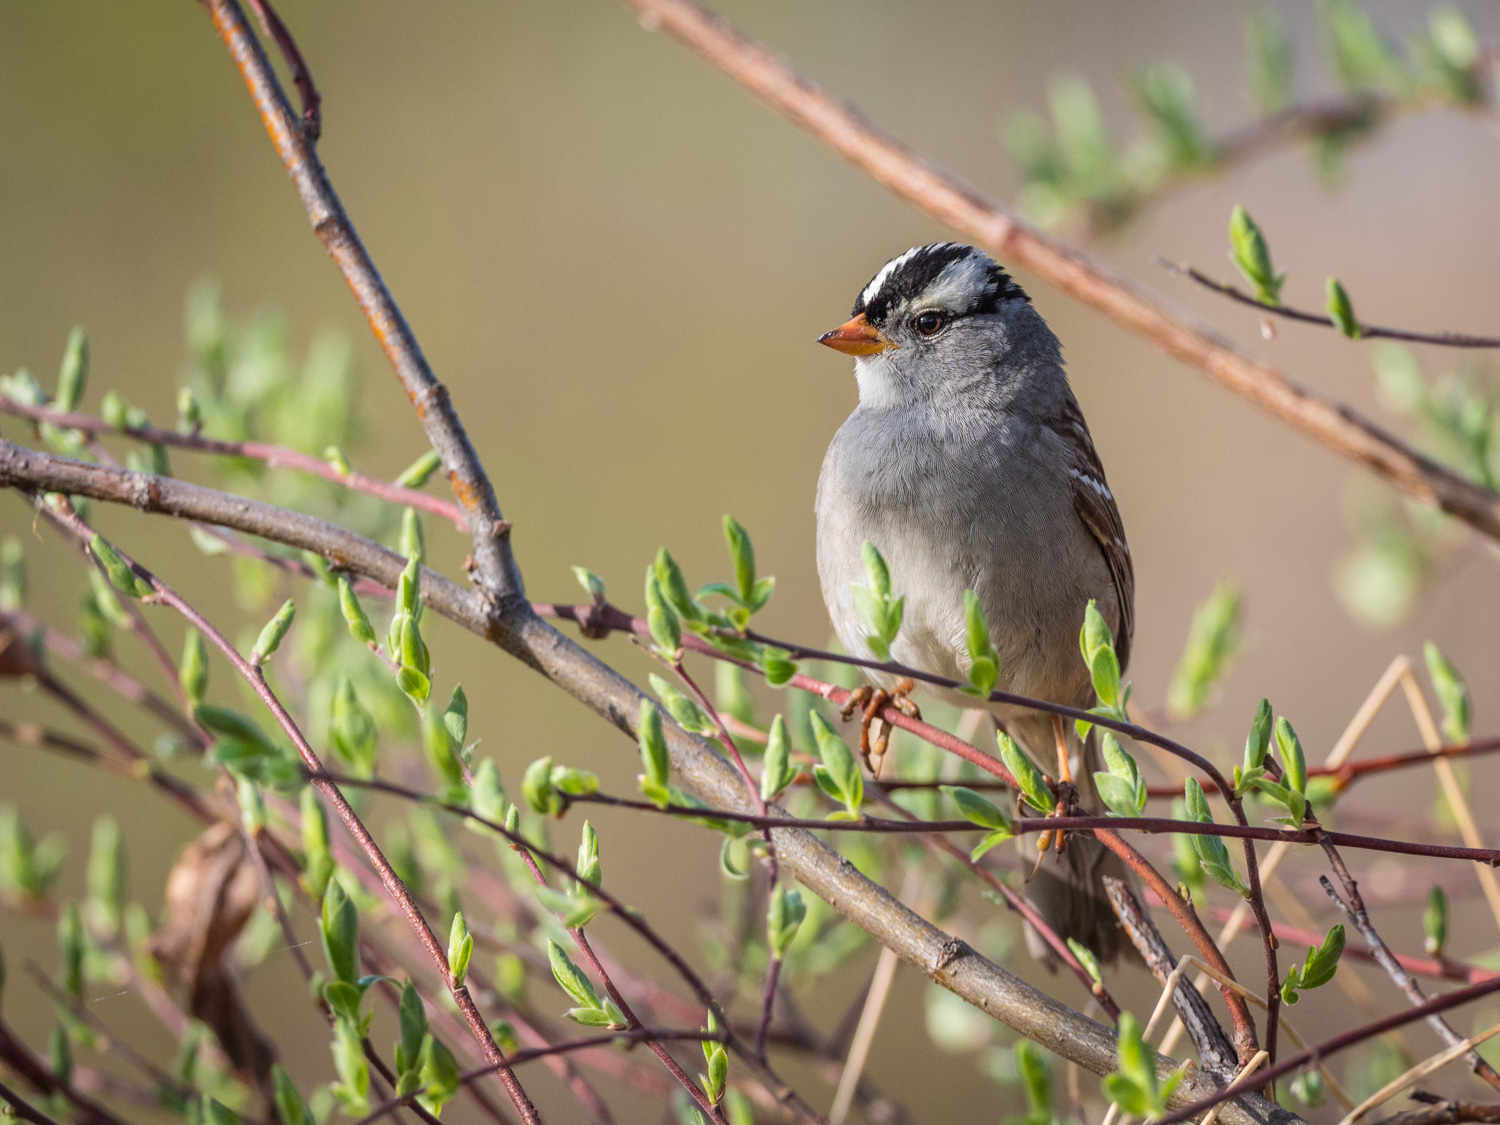 A Guide to Photographing Birds and Wildlife in a Wetland Area - bird in a tree